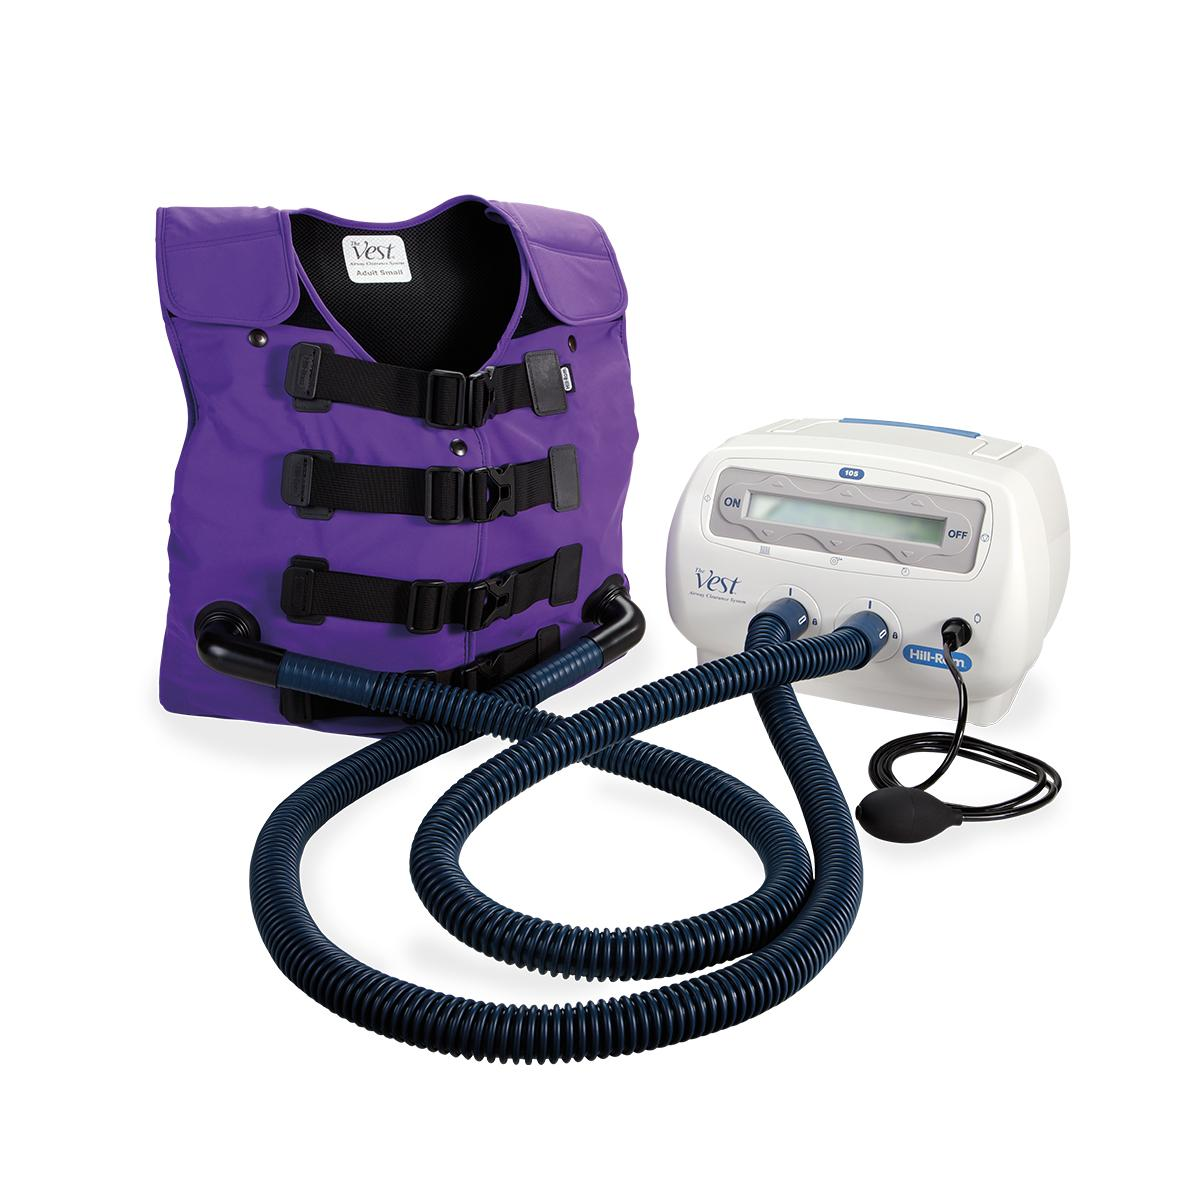 The Vest, Model 105, is shown in purple, connected with air hoses to the control unit